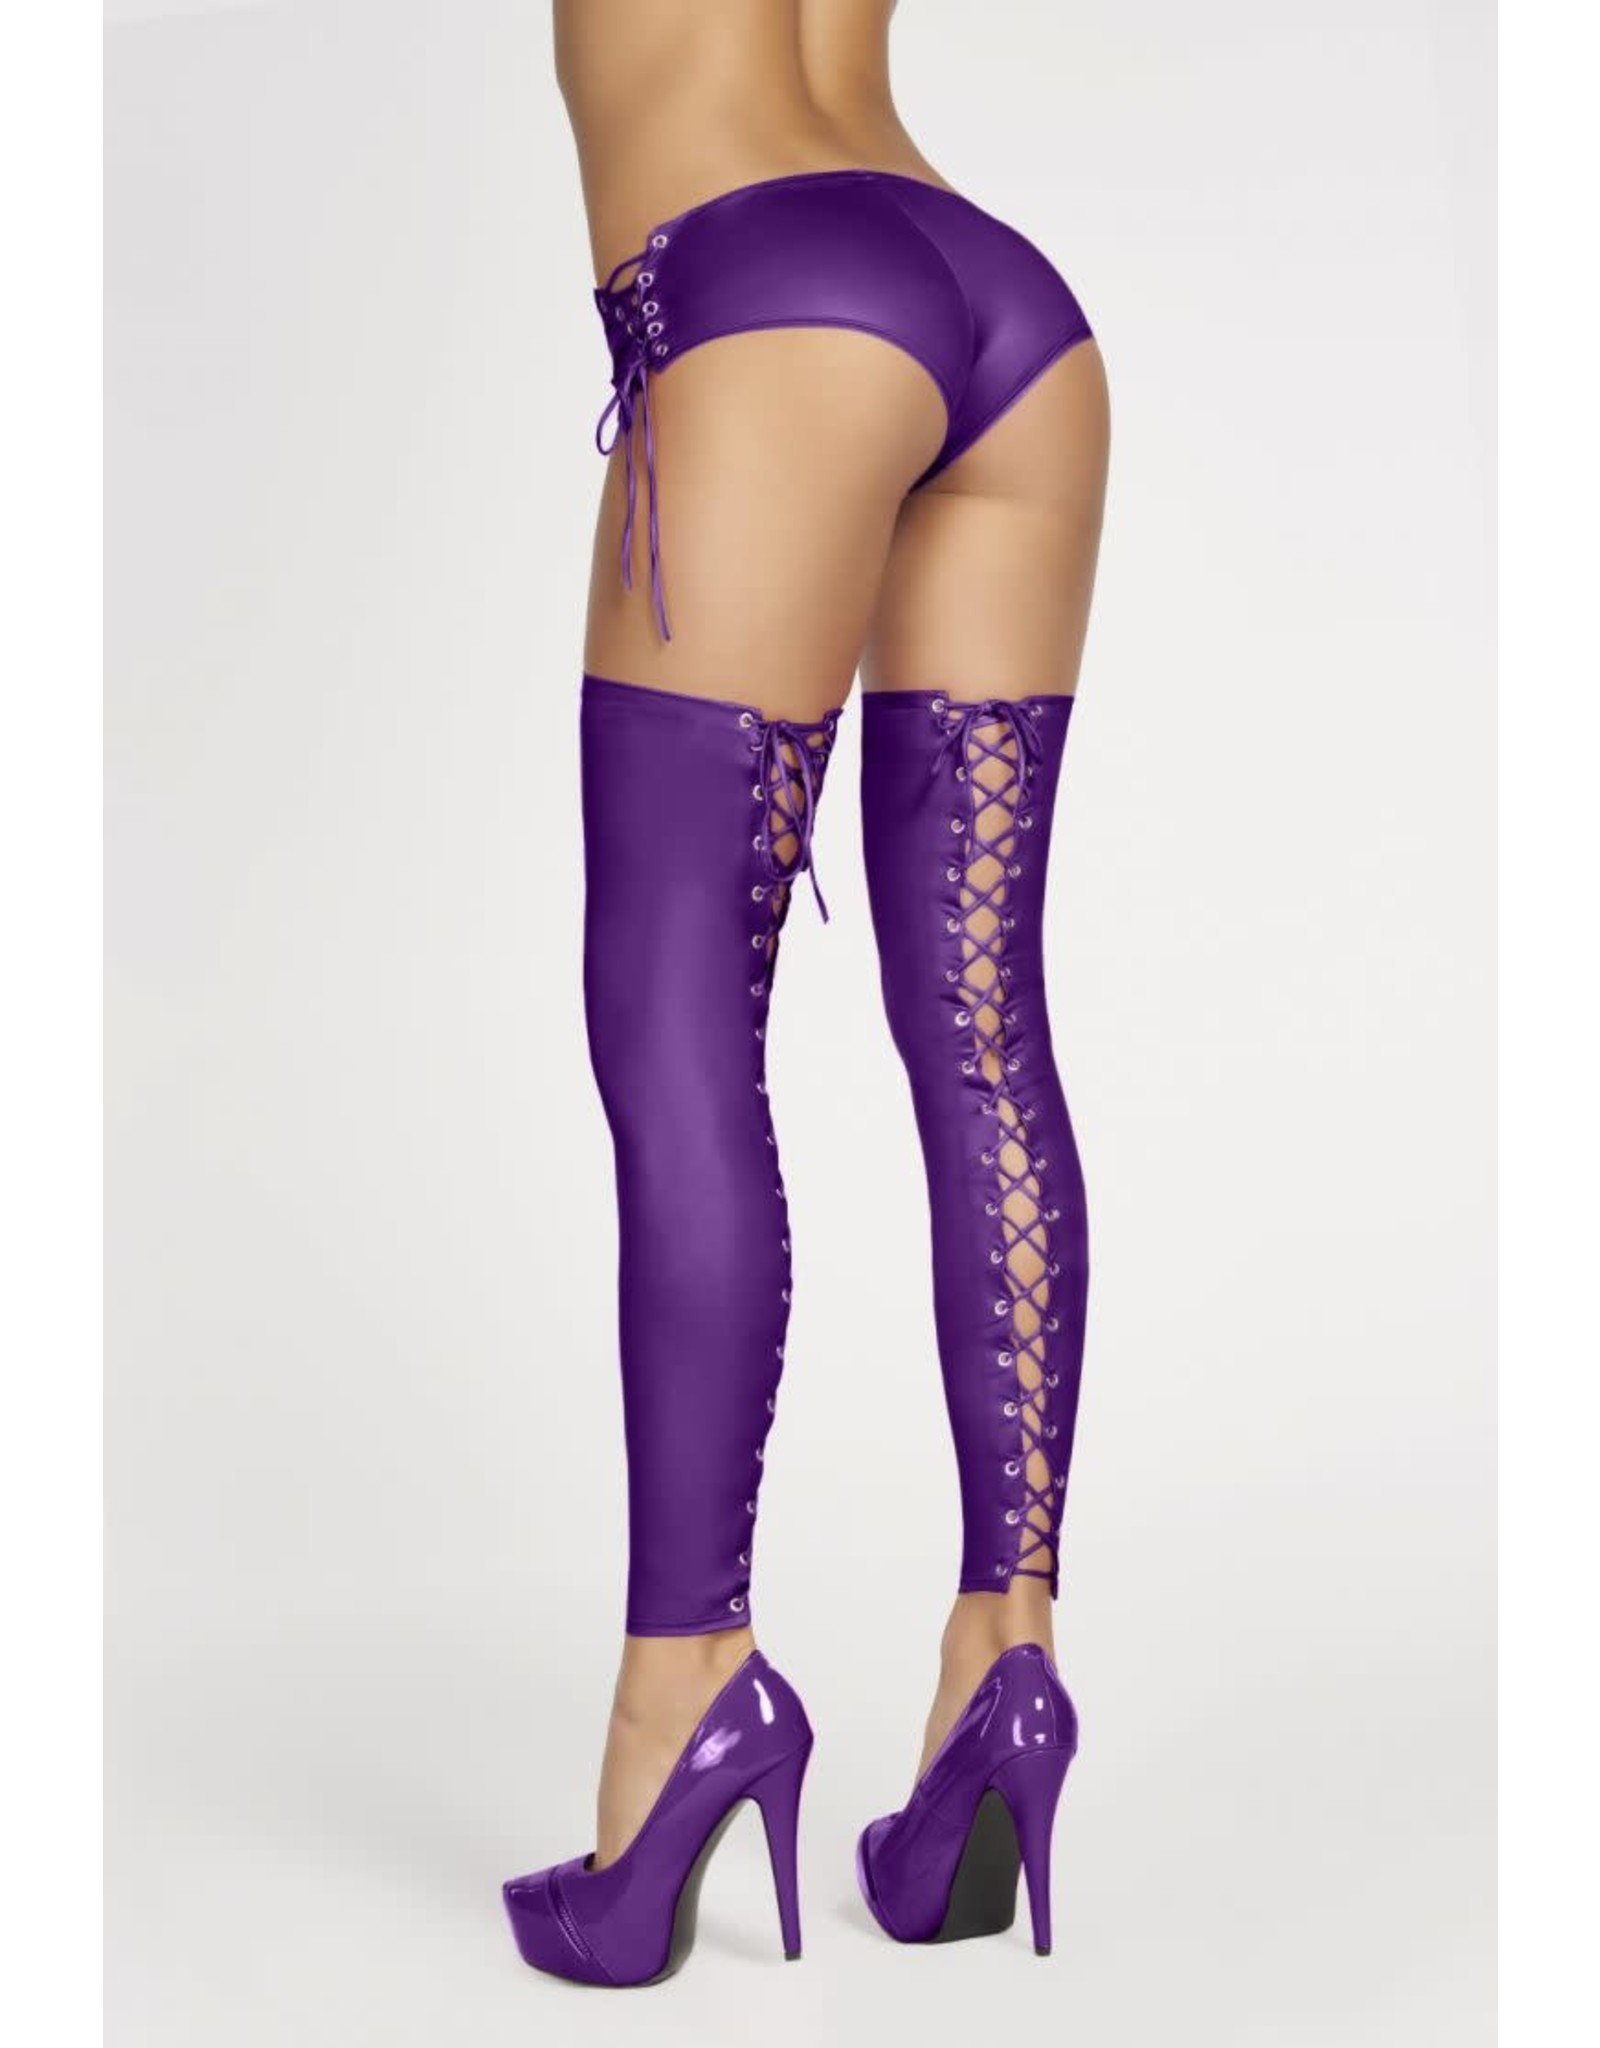 7 HEAVEN - SEXY LEGGINGS WITH LACING AT THE BACK - 2XL/3XL